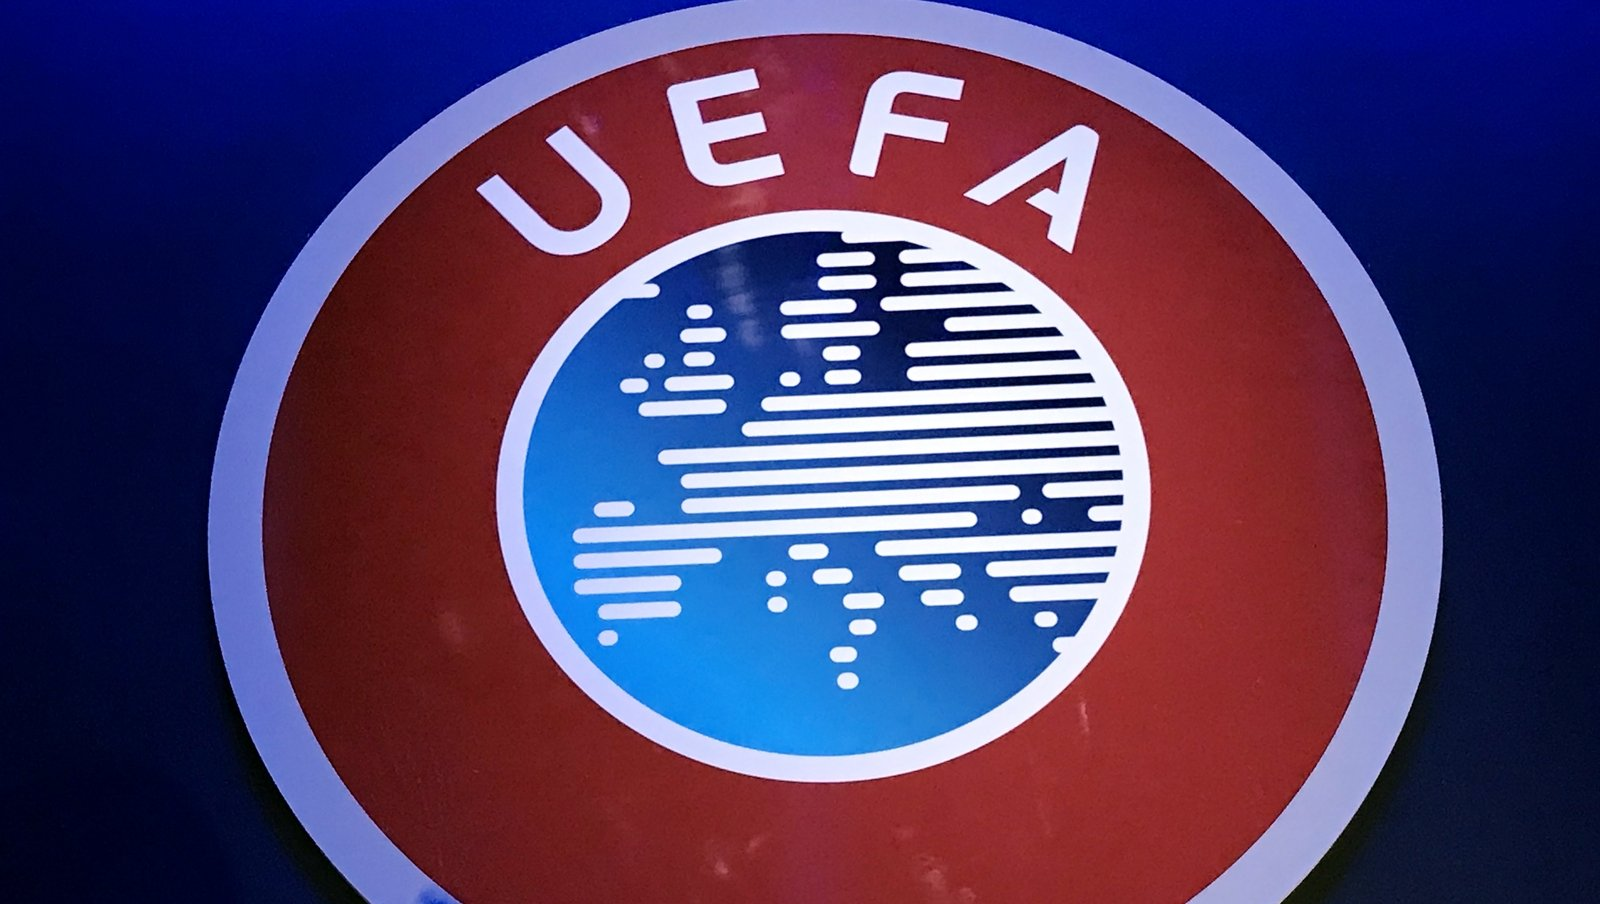 UEFA secures court docket expose to block unlawful streaming